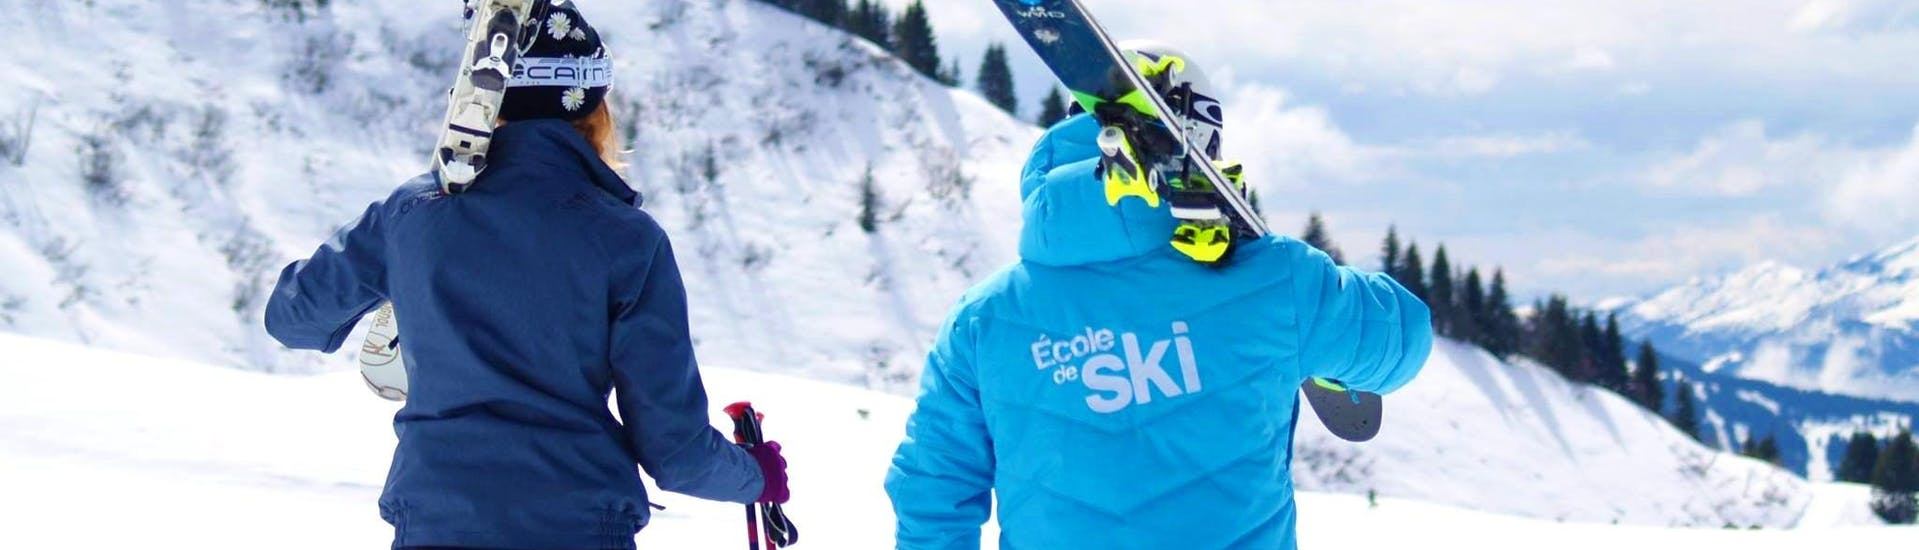 private-ski-lessons-for-adults-easy2ride-avoriaz-hero